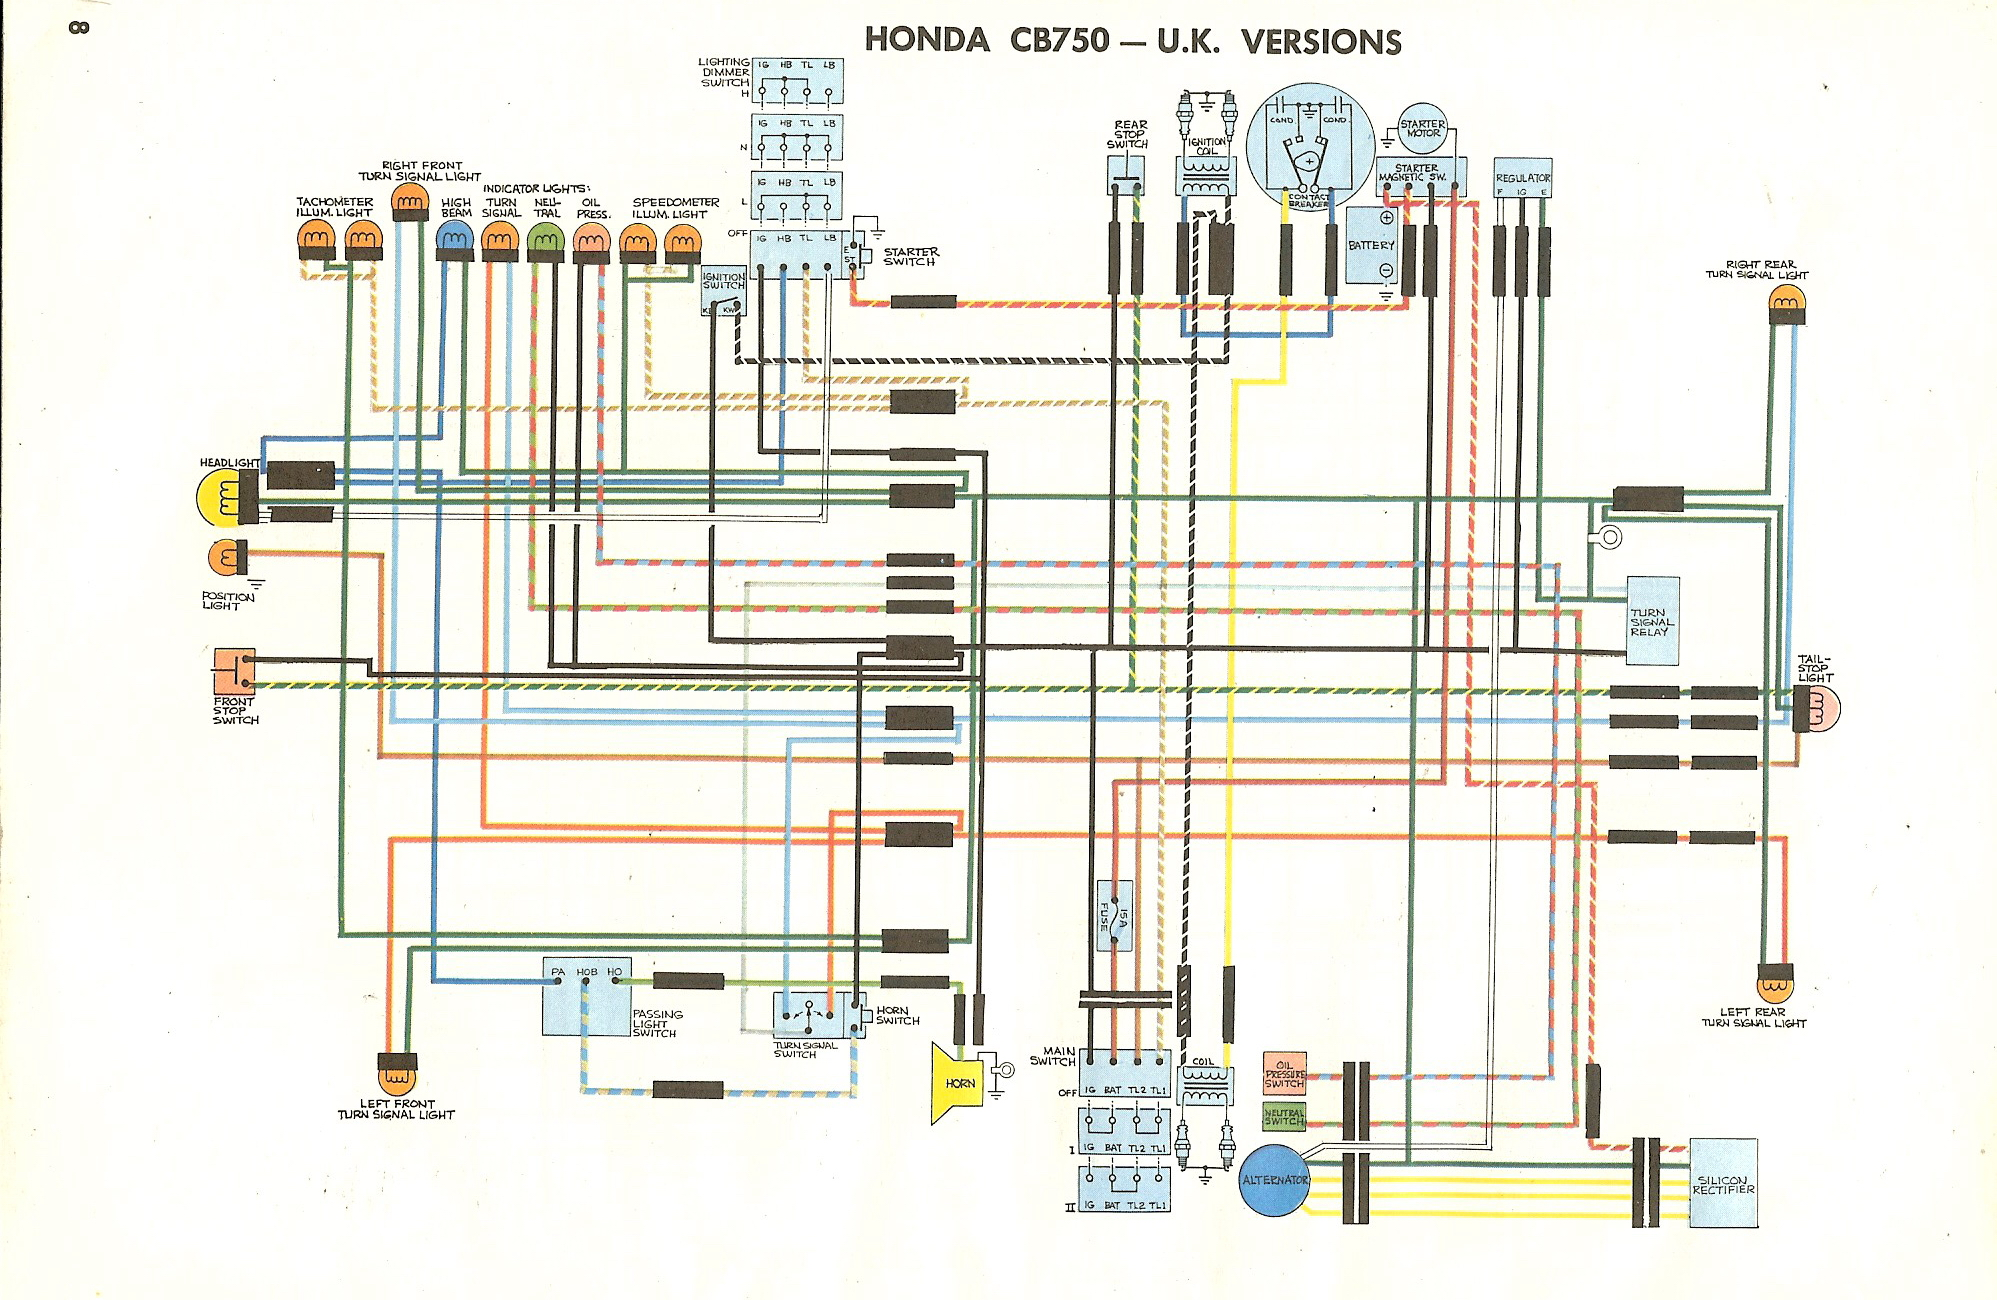 WD750UK cb750k wiring diagram motorcycle ignition wiring diagram \u2022 wiring cb750 chopper wiring harness at bakdesigns.co